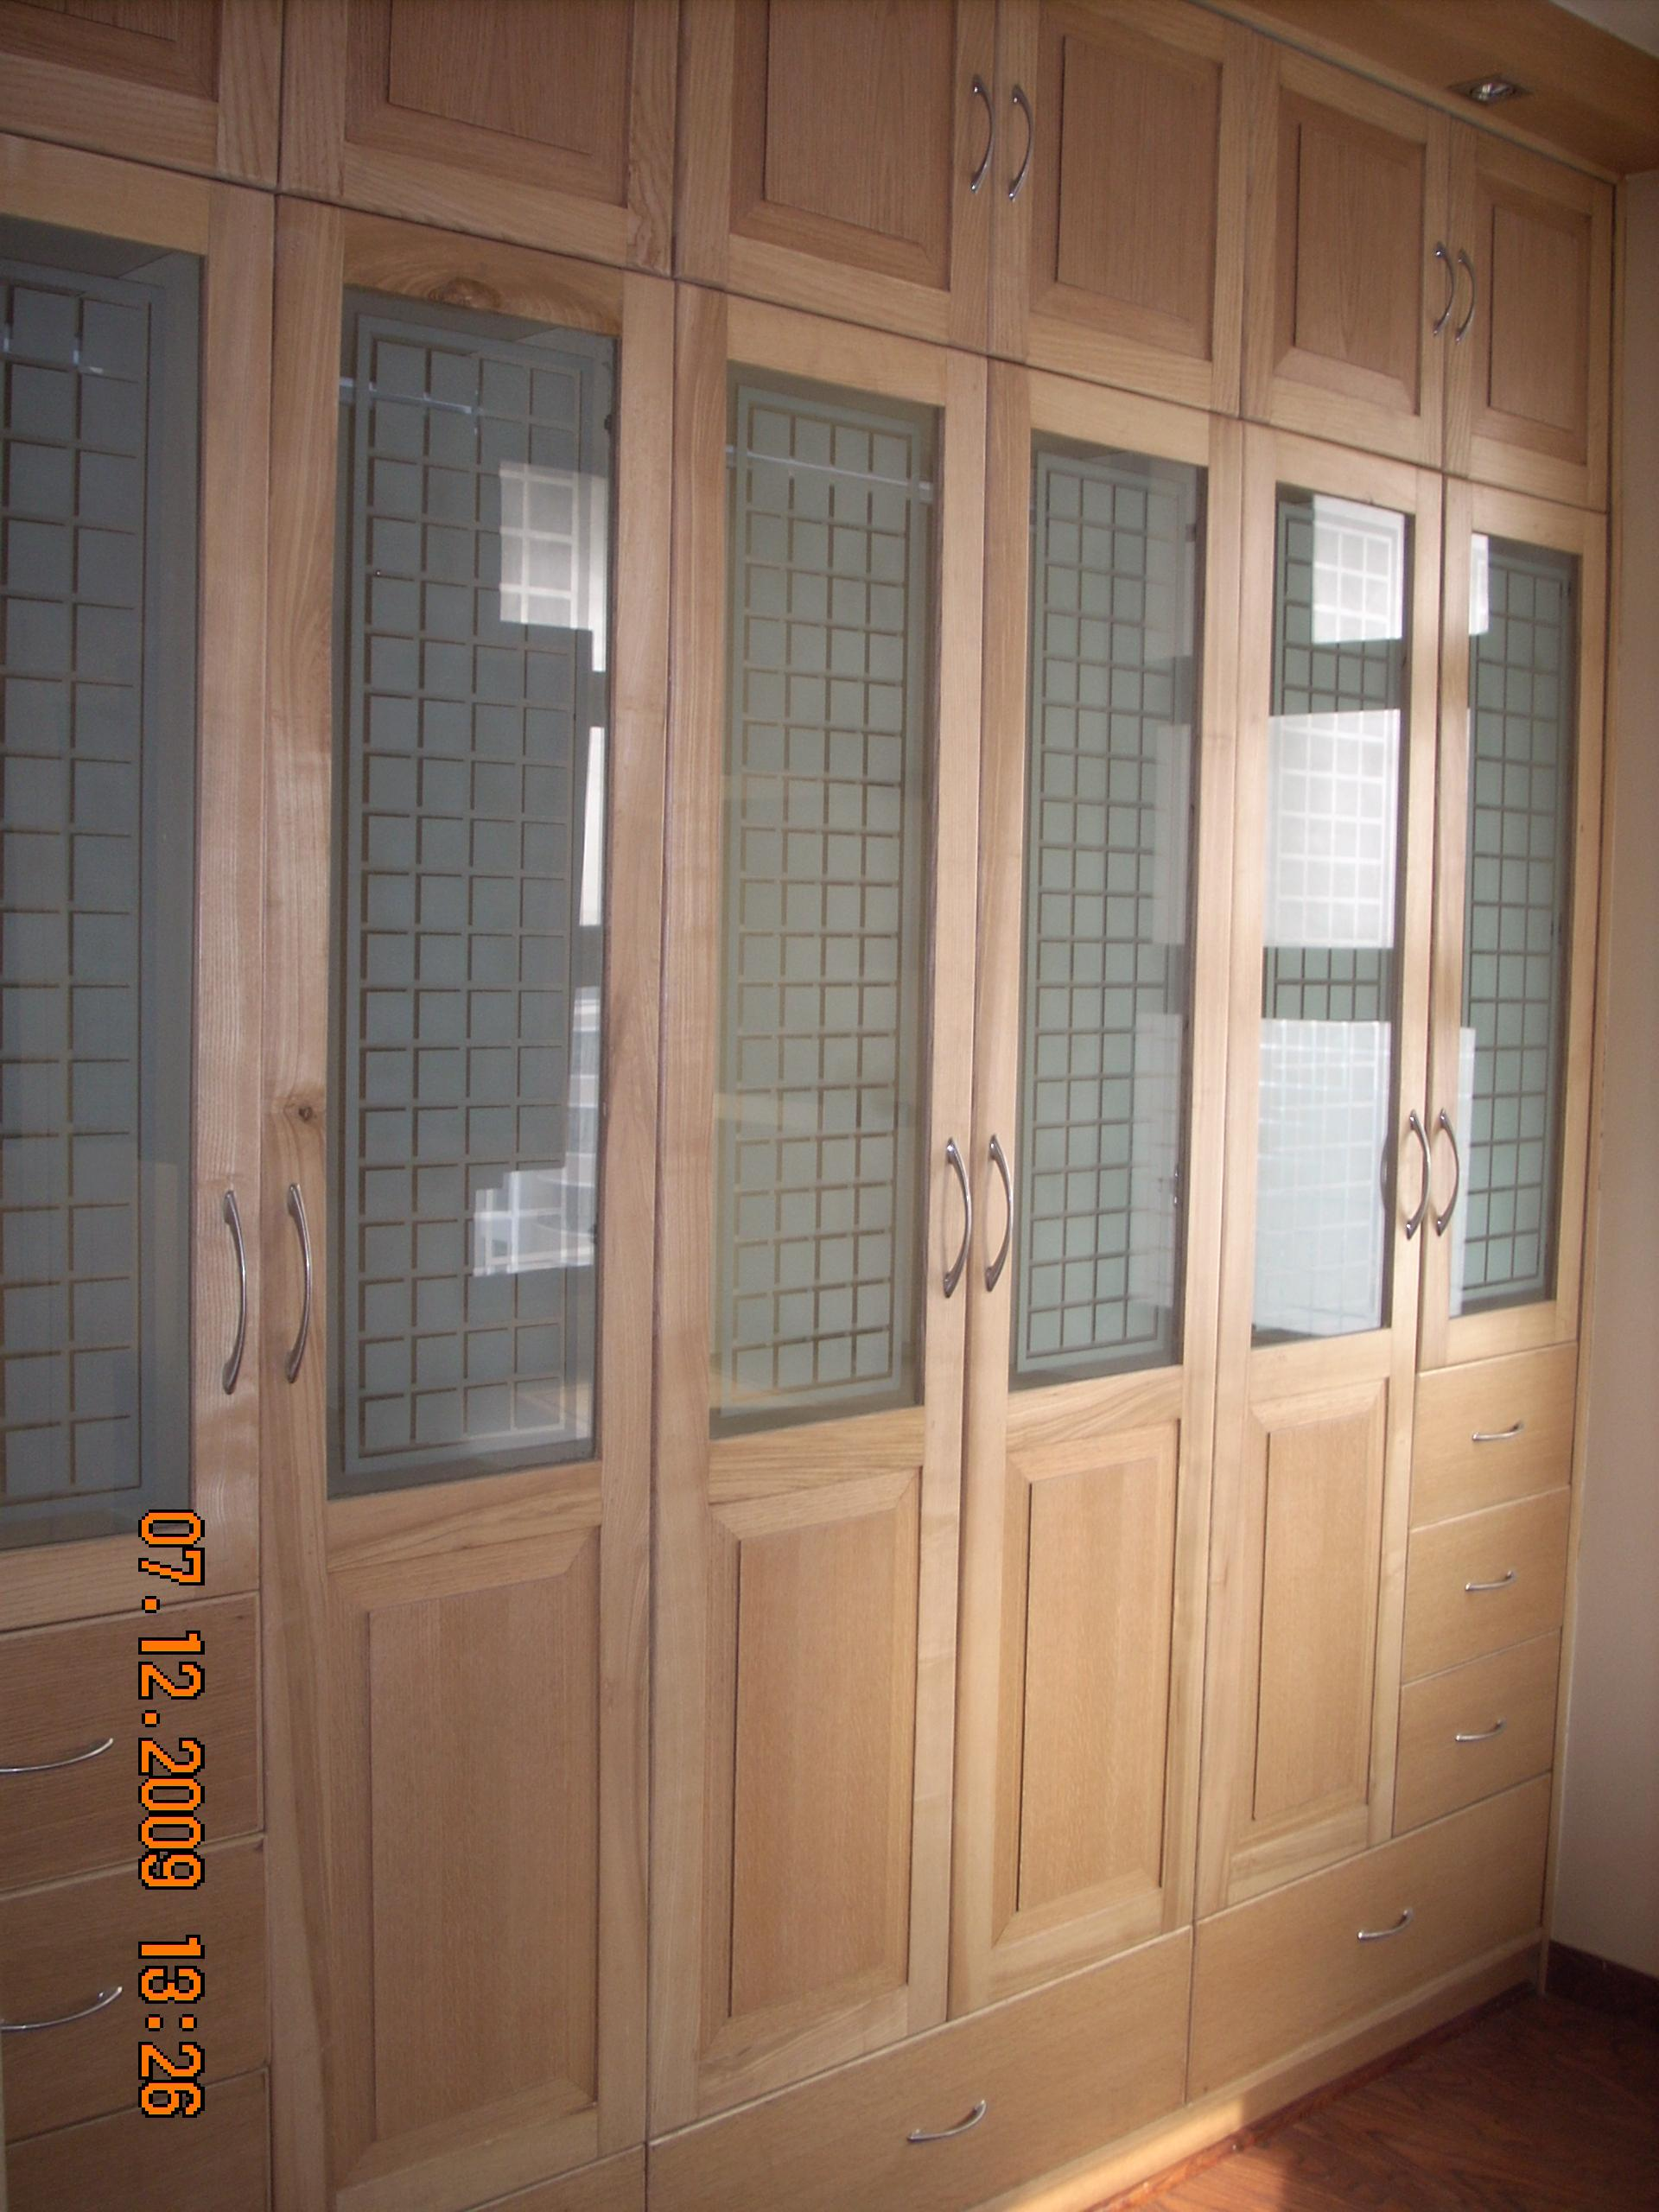 Woodworking plans window shutter designs in kerala pdf plans for Window shutter designs